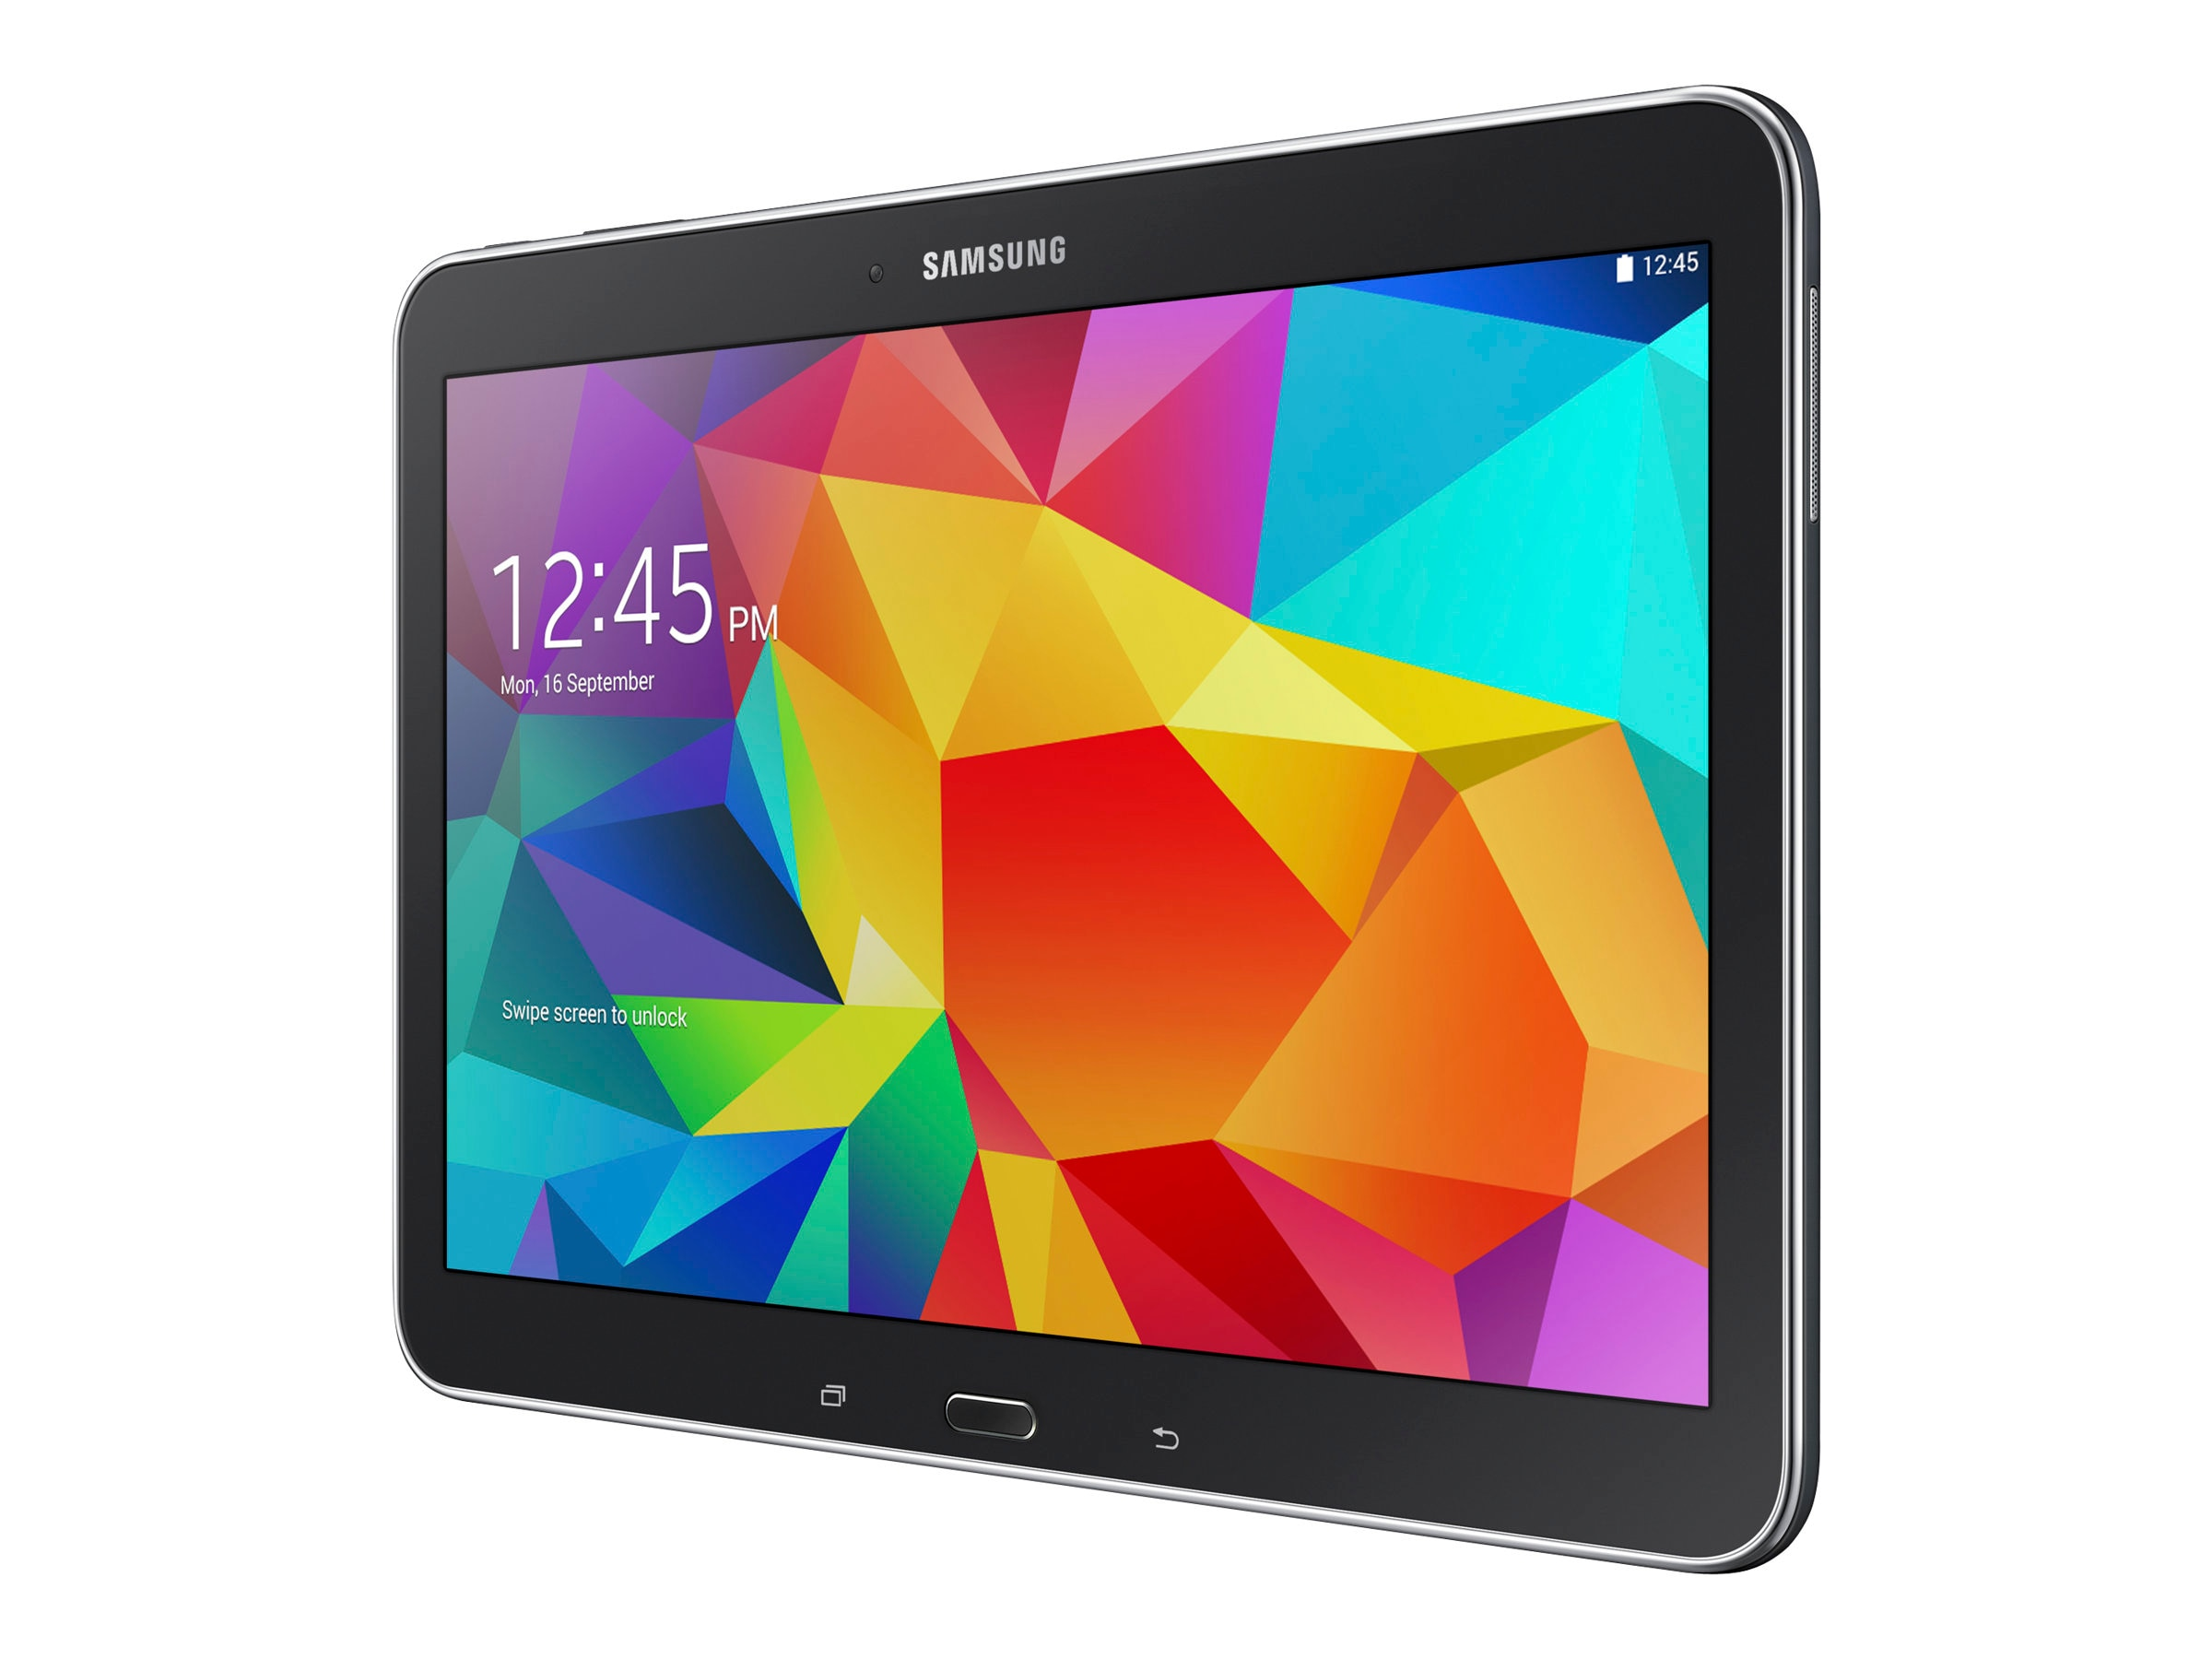 Samsung Galaxy Tab 4 1.2GHz processor Android 4.4 (KitKat), SM-T530NYKAXAR